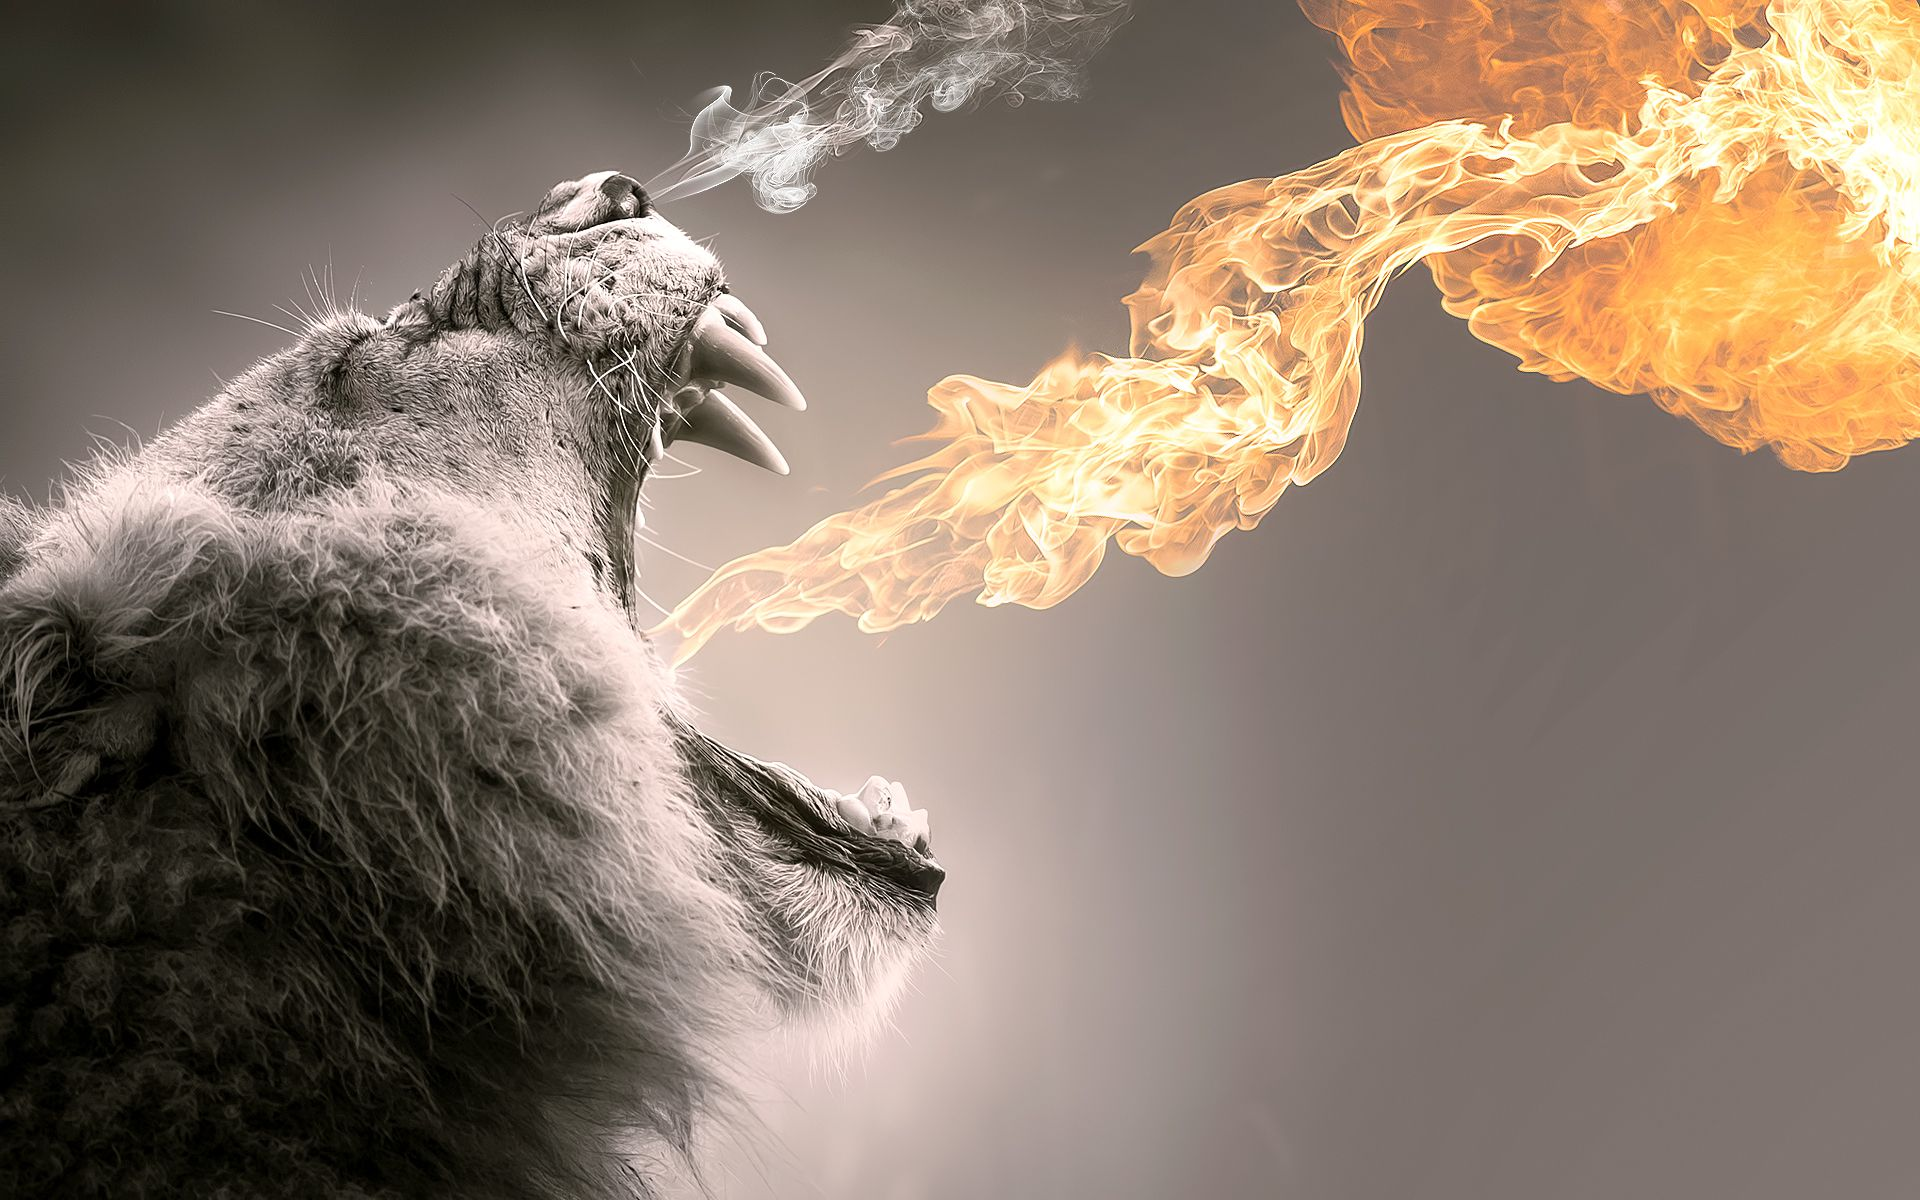 roaring flames wide cool wallpapers download Lion